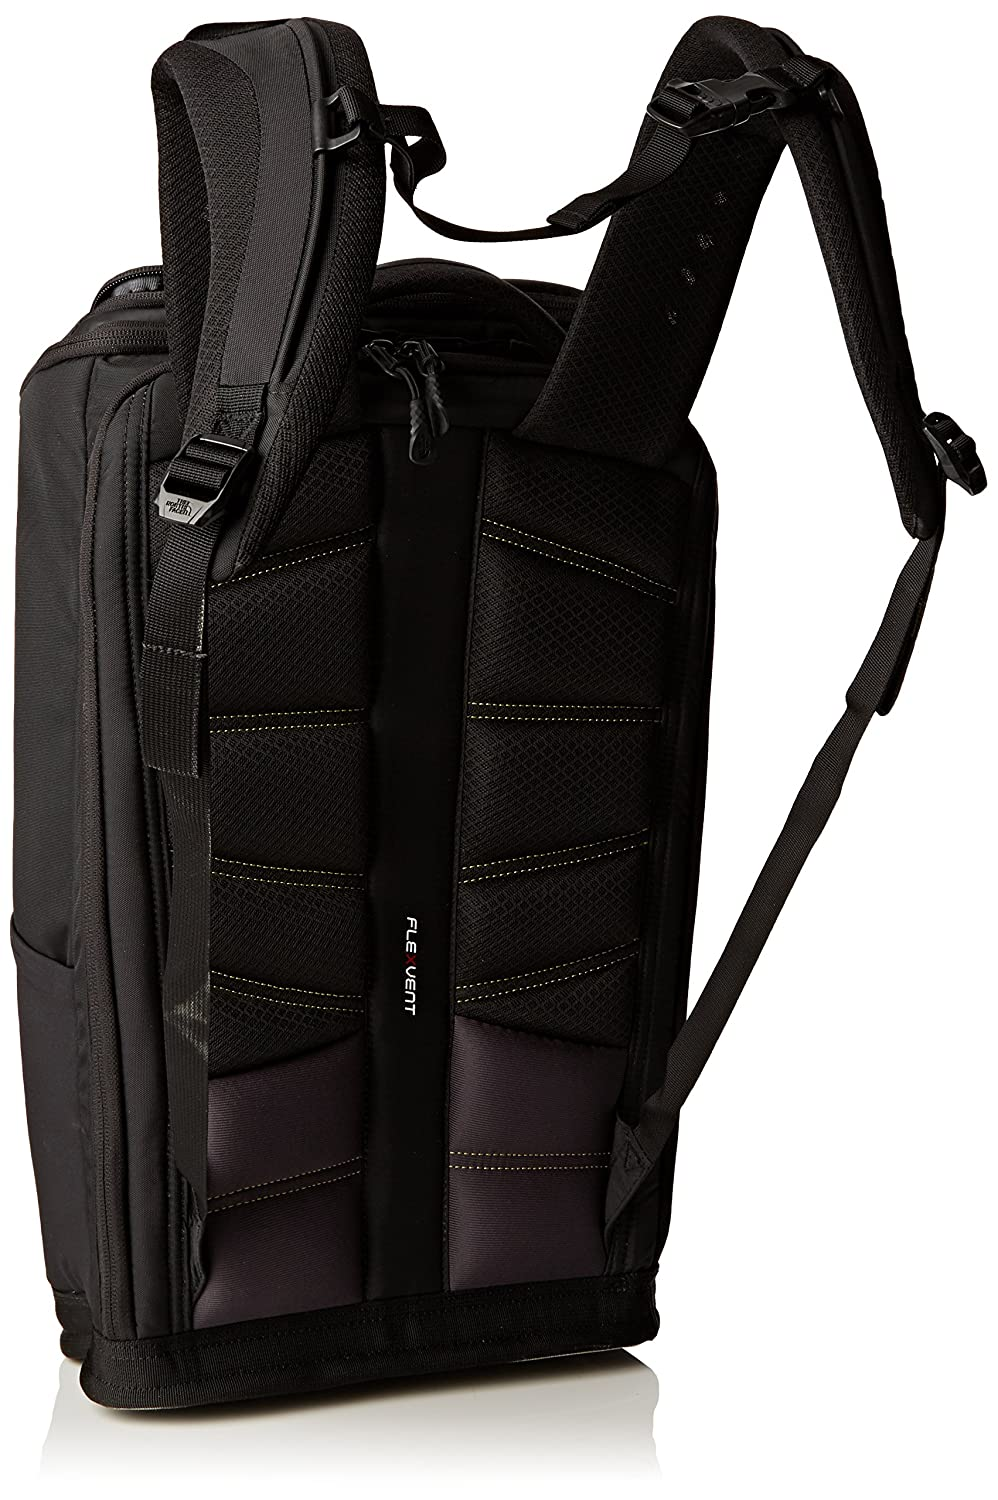 91zfUPZNt4L._UL1500_ amazon com the north face fuse box charged backpack, tnf black north face fuse box backpack at reclaimingppi.co